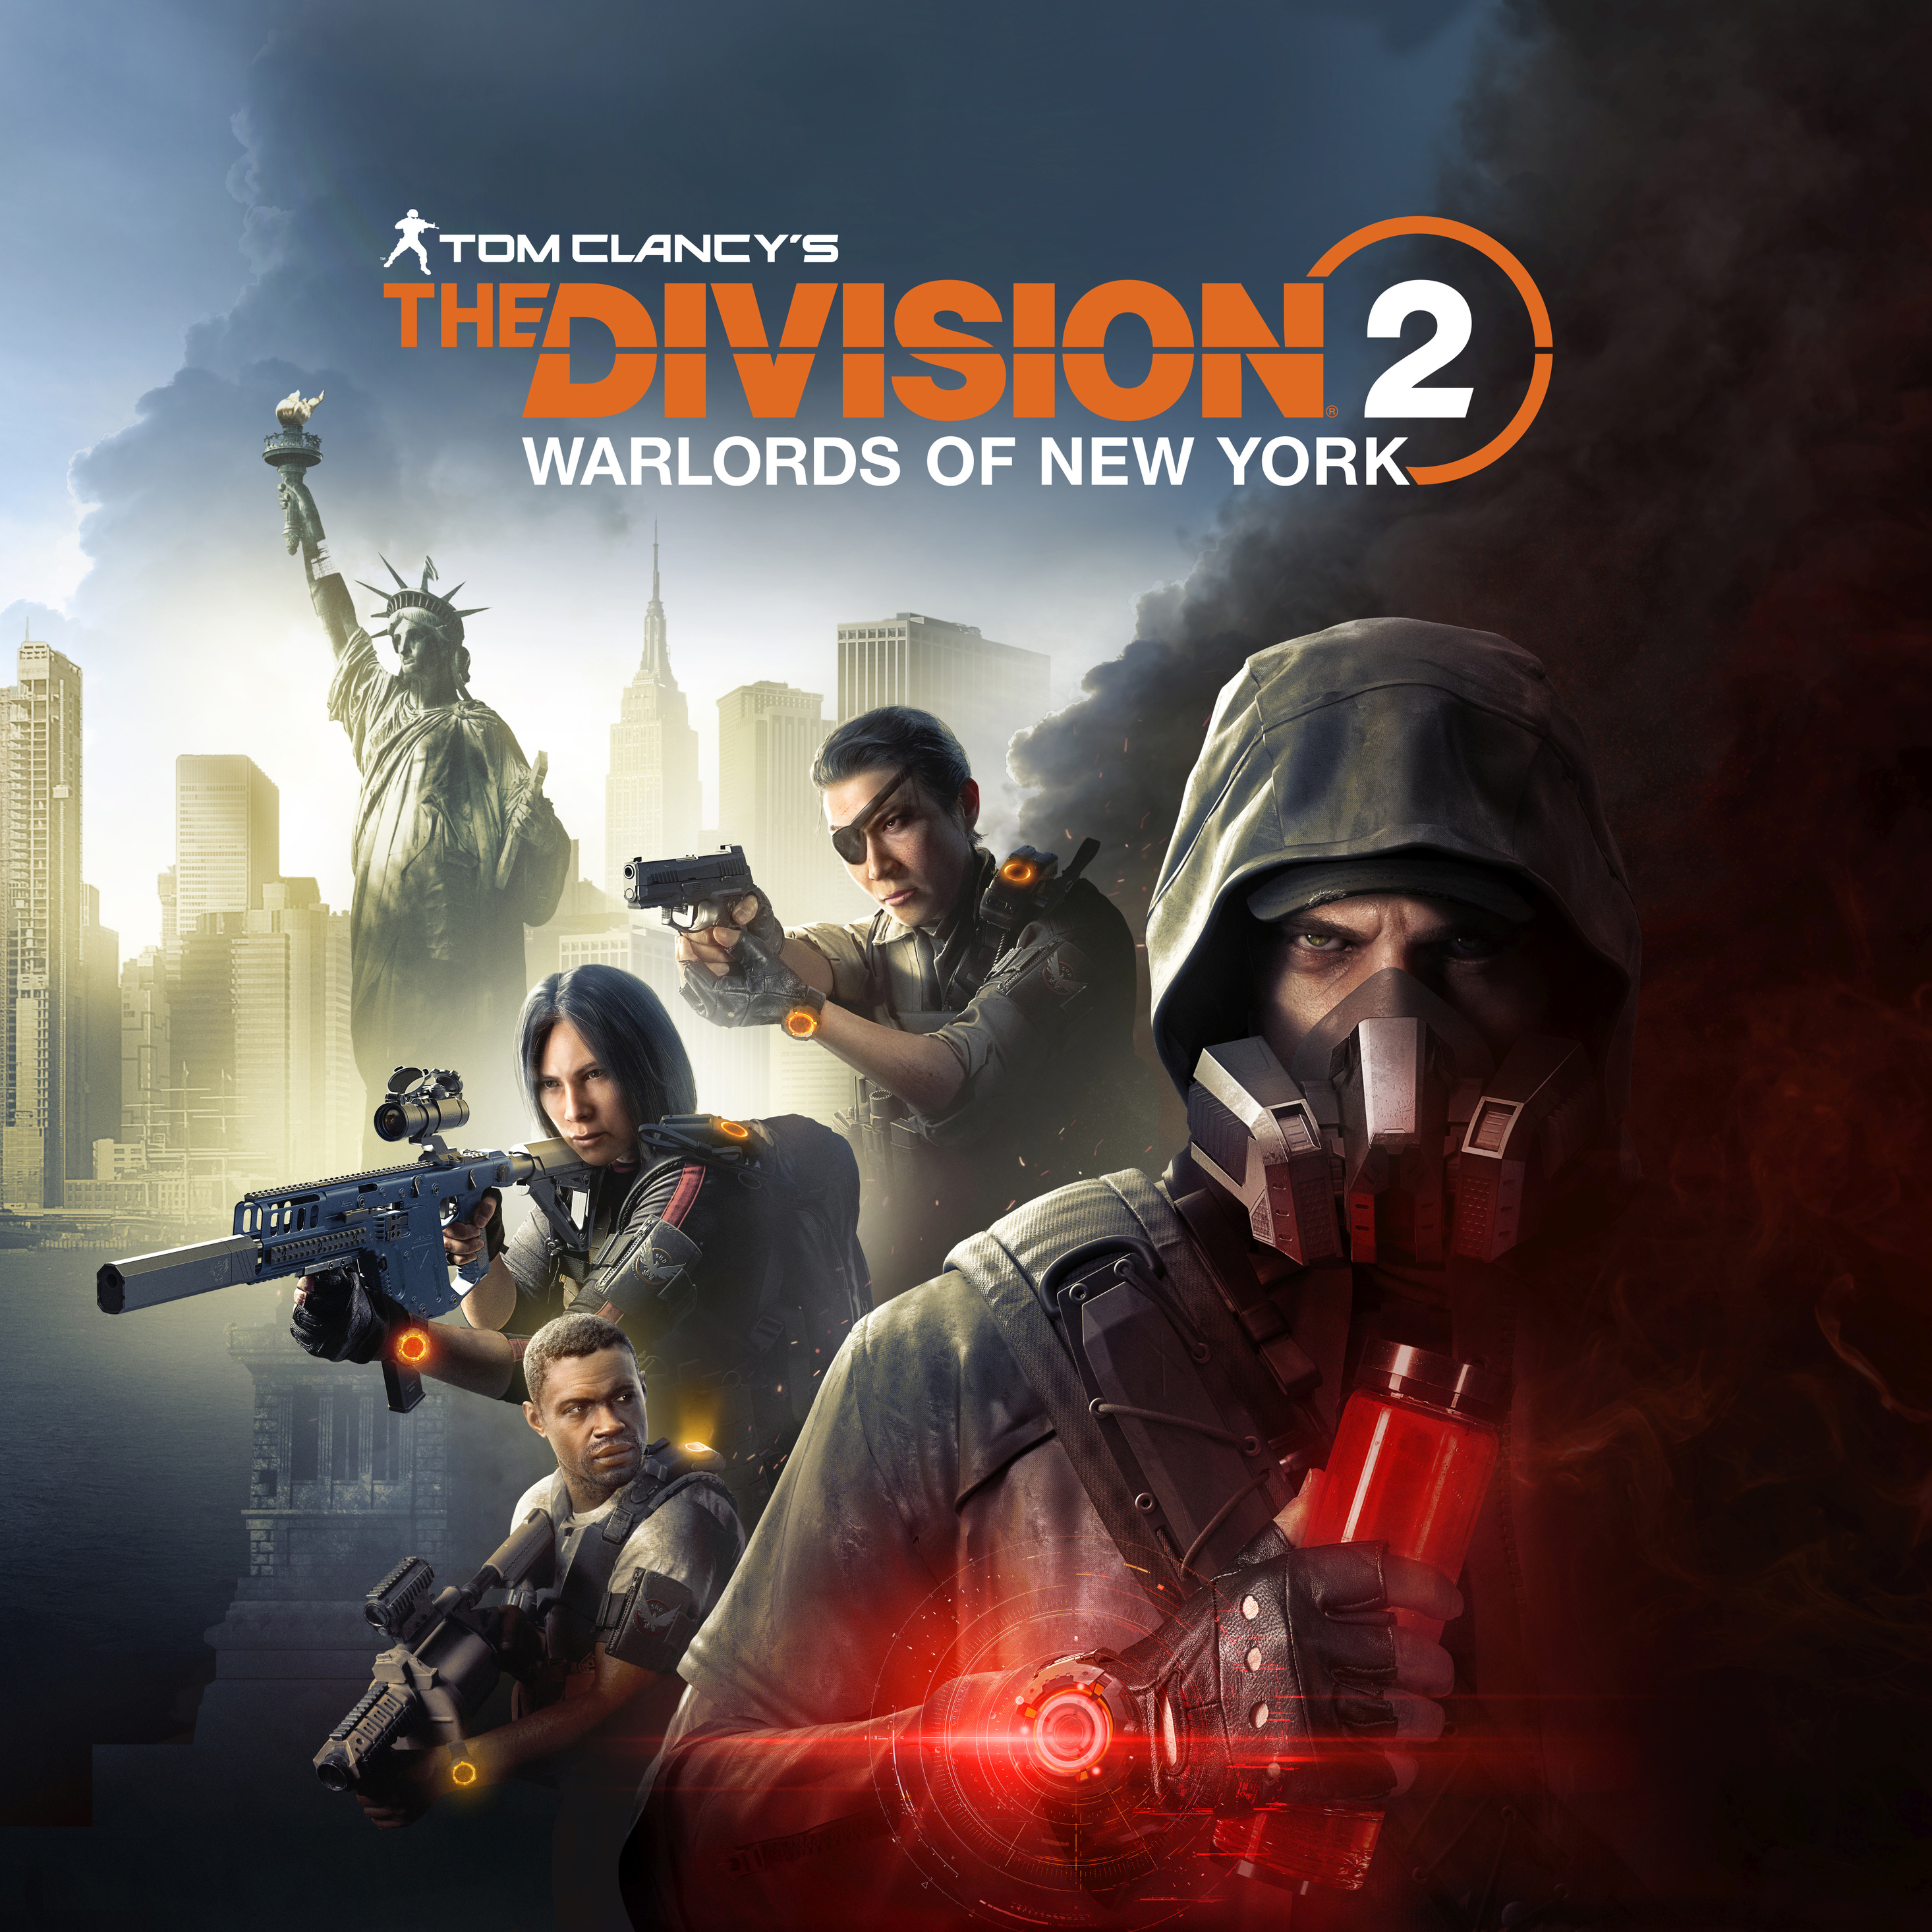 the-division-2-warlords-of-new-york-2020-pi.jpg